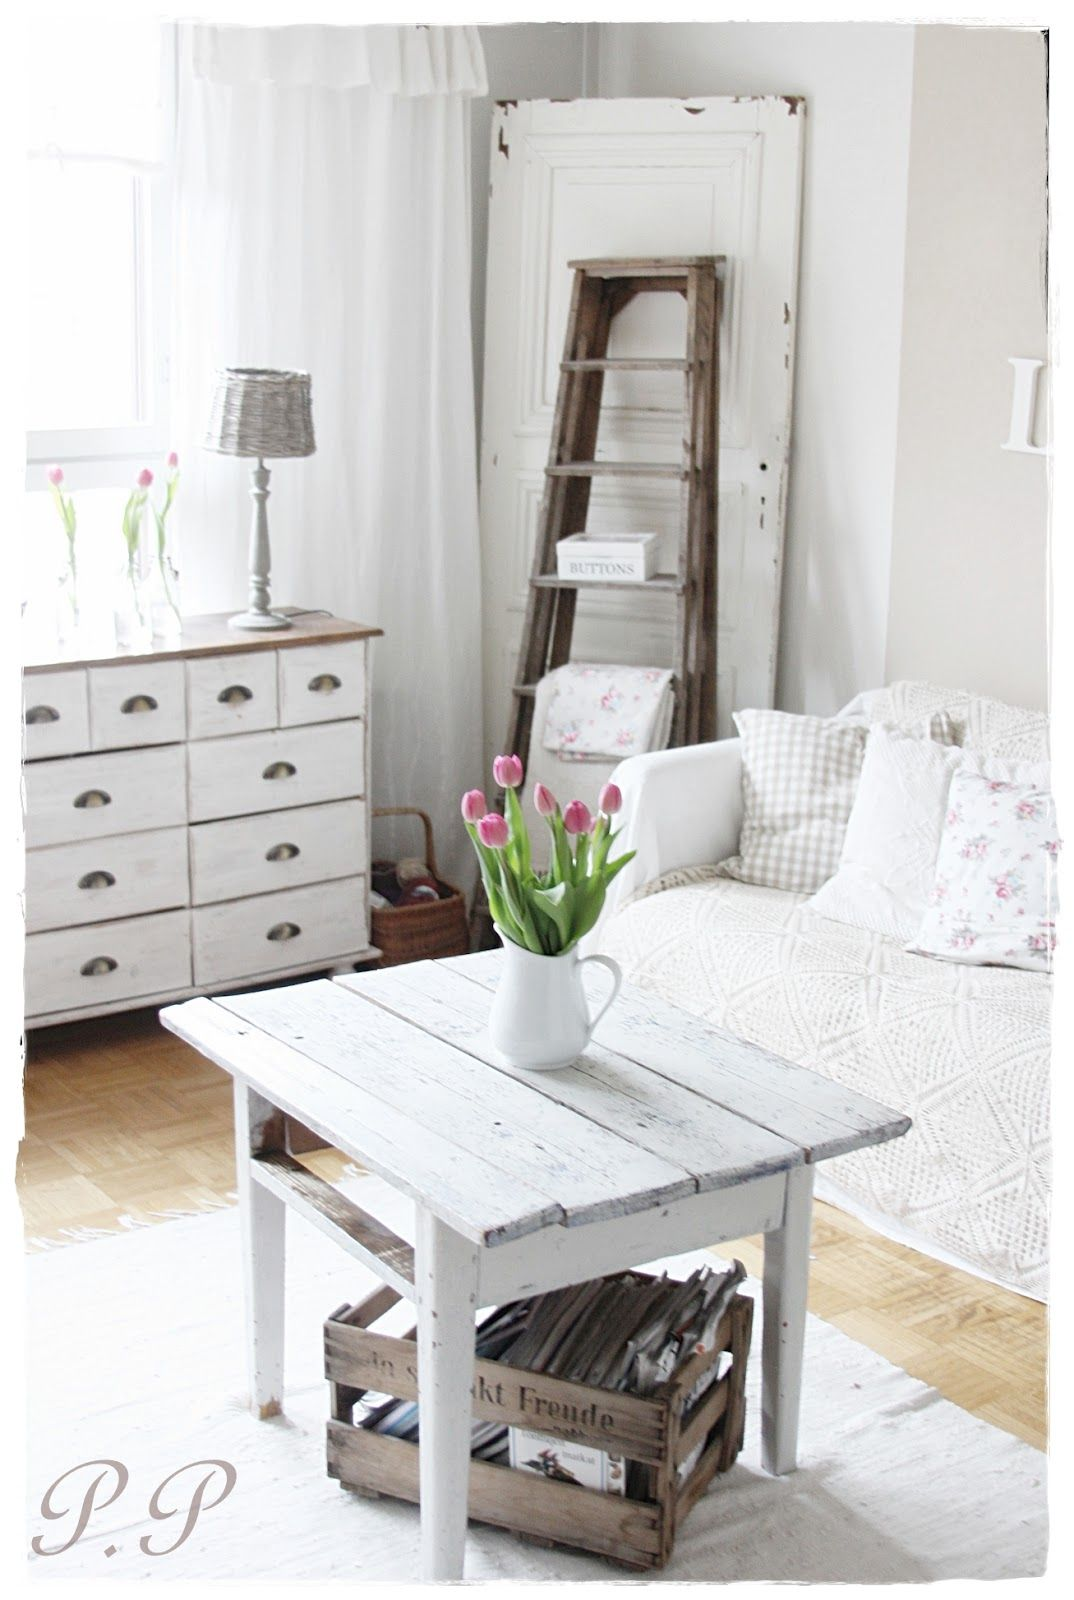 PIENI PILVENHATTARA | Farmhouse and fixer upper style | Pinterest ...